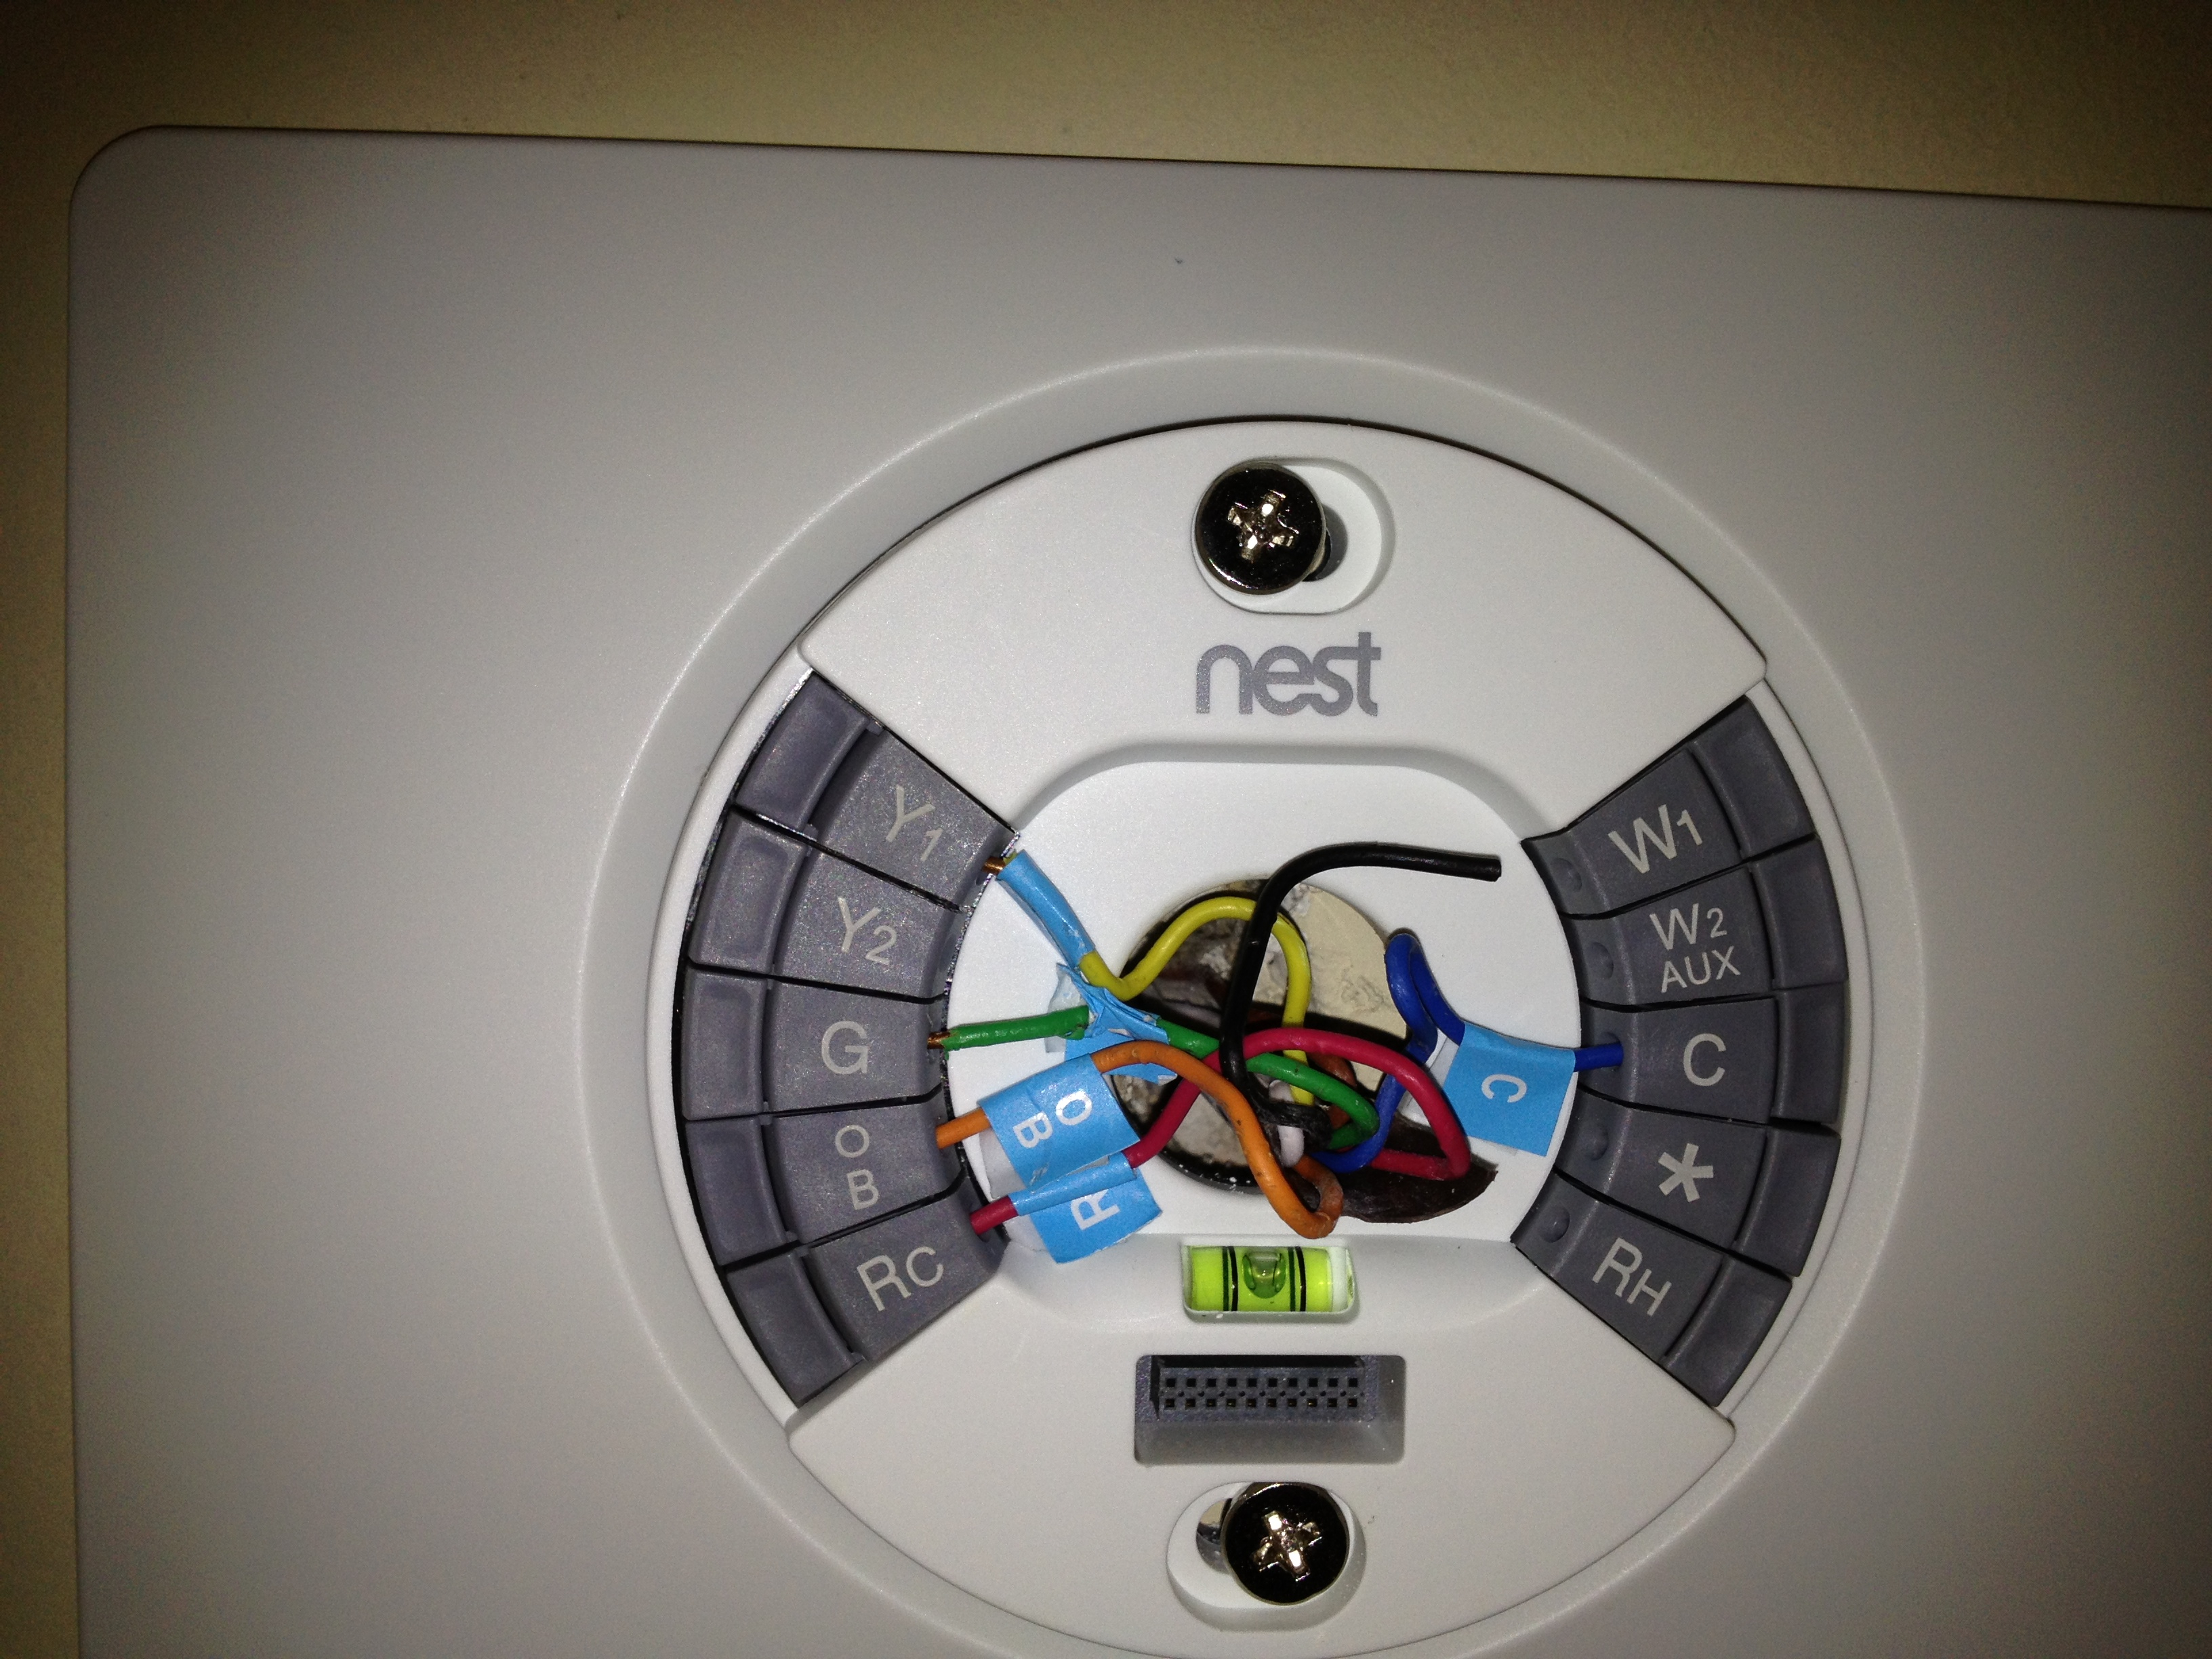 American Standard Thermostat Wiring Diagram from thefamilyhelpdesk.files.wordpress.com